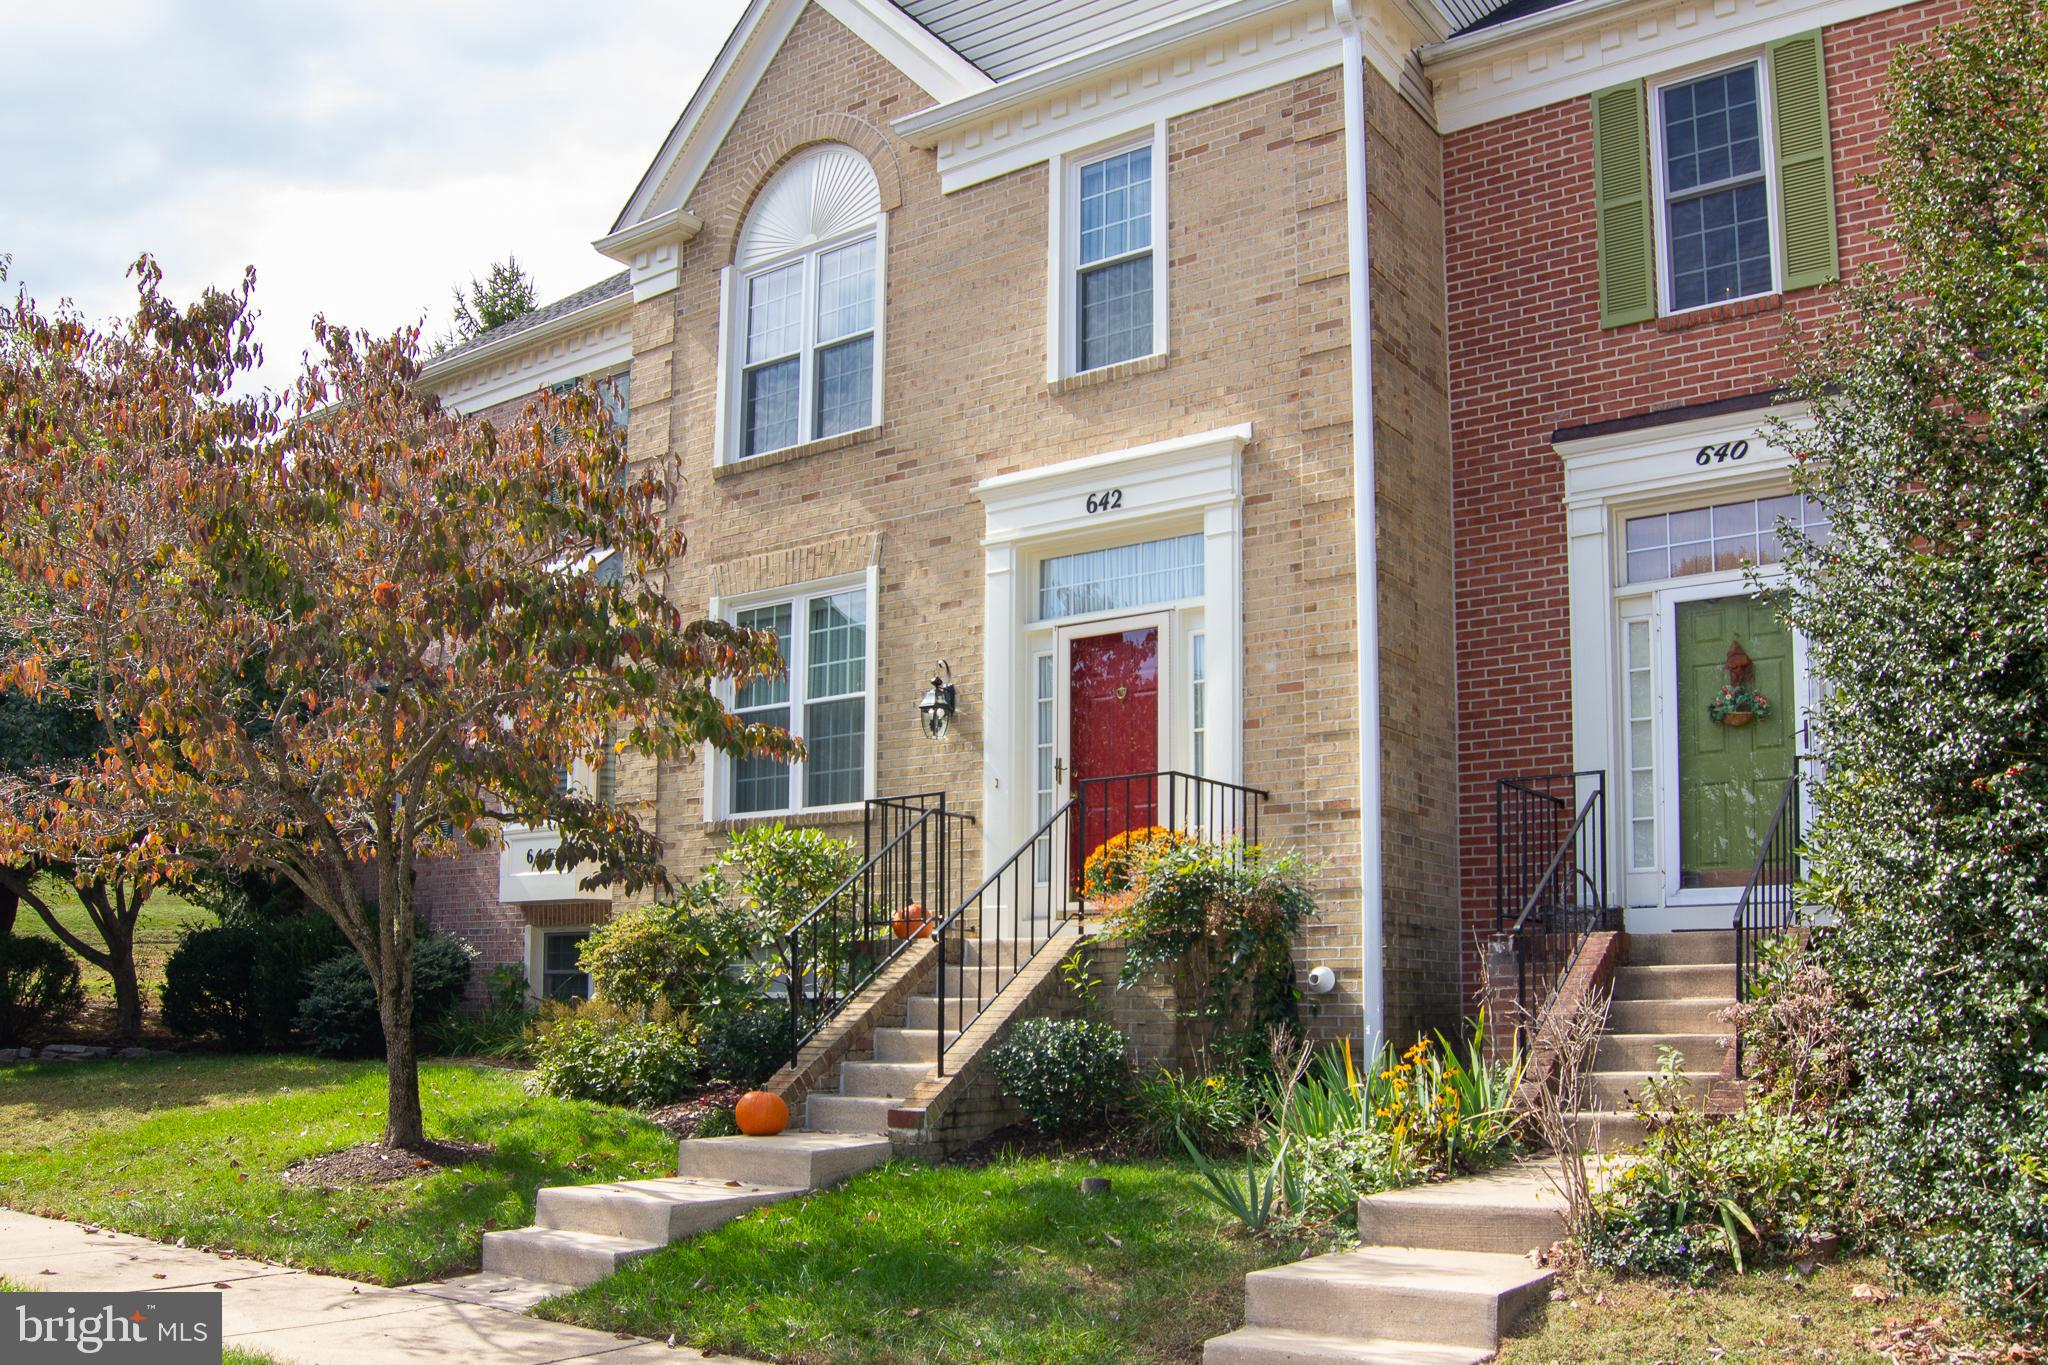 SHOW STOPPER! Brick townhouse in a sought after community at the end of a quiet court* Updated and reconfigured kitchen with beautiful cabinetry, granite, wood floors, and stainless steel efficiency-rated Kitchen Aid appliances.*Main level boast lots of natural light* Dining room leading to deck that backs to open space and trees*Upstairs features a large master bedroom with vaulted ceiling, large walk-in closet, and private master bath. The master bath has a Velux manual-open skylight, large tub, and double sinks. There are also additional bedrooms, laundry area, and an additional bath. Downstairs has a large cozy family room with a fireplace for cold winter nights and a large storage area*Sliding doors open onto a brick patio that is covered by the deck above*Back yard is private and fenced. Neutral paint choices throughout. 30-year architectural roof - 3 years young* Condensing unit and water heater are about 4 years young* Most windows have been replaced. Immaculate! This is the one! NO SIGN ON PROPERTY - Welcome Home